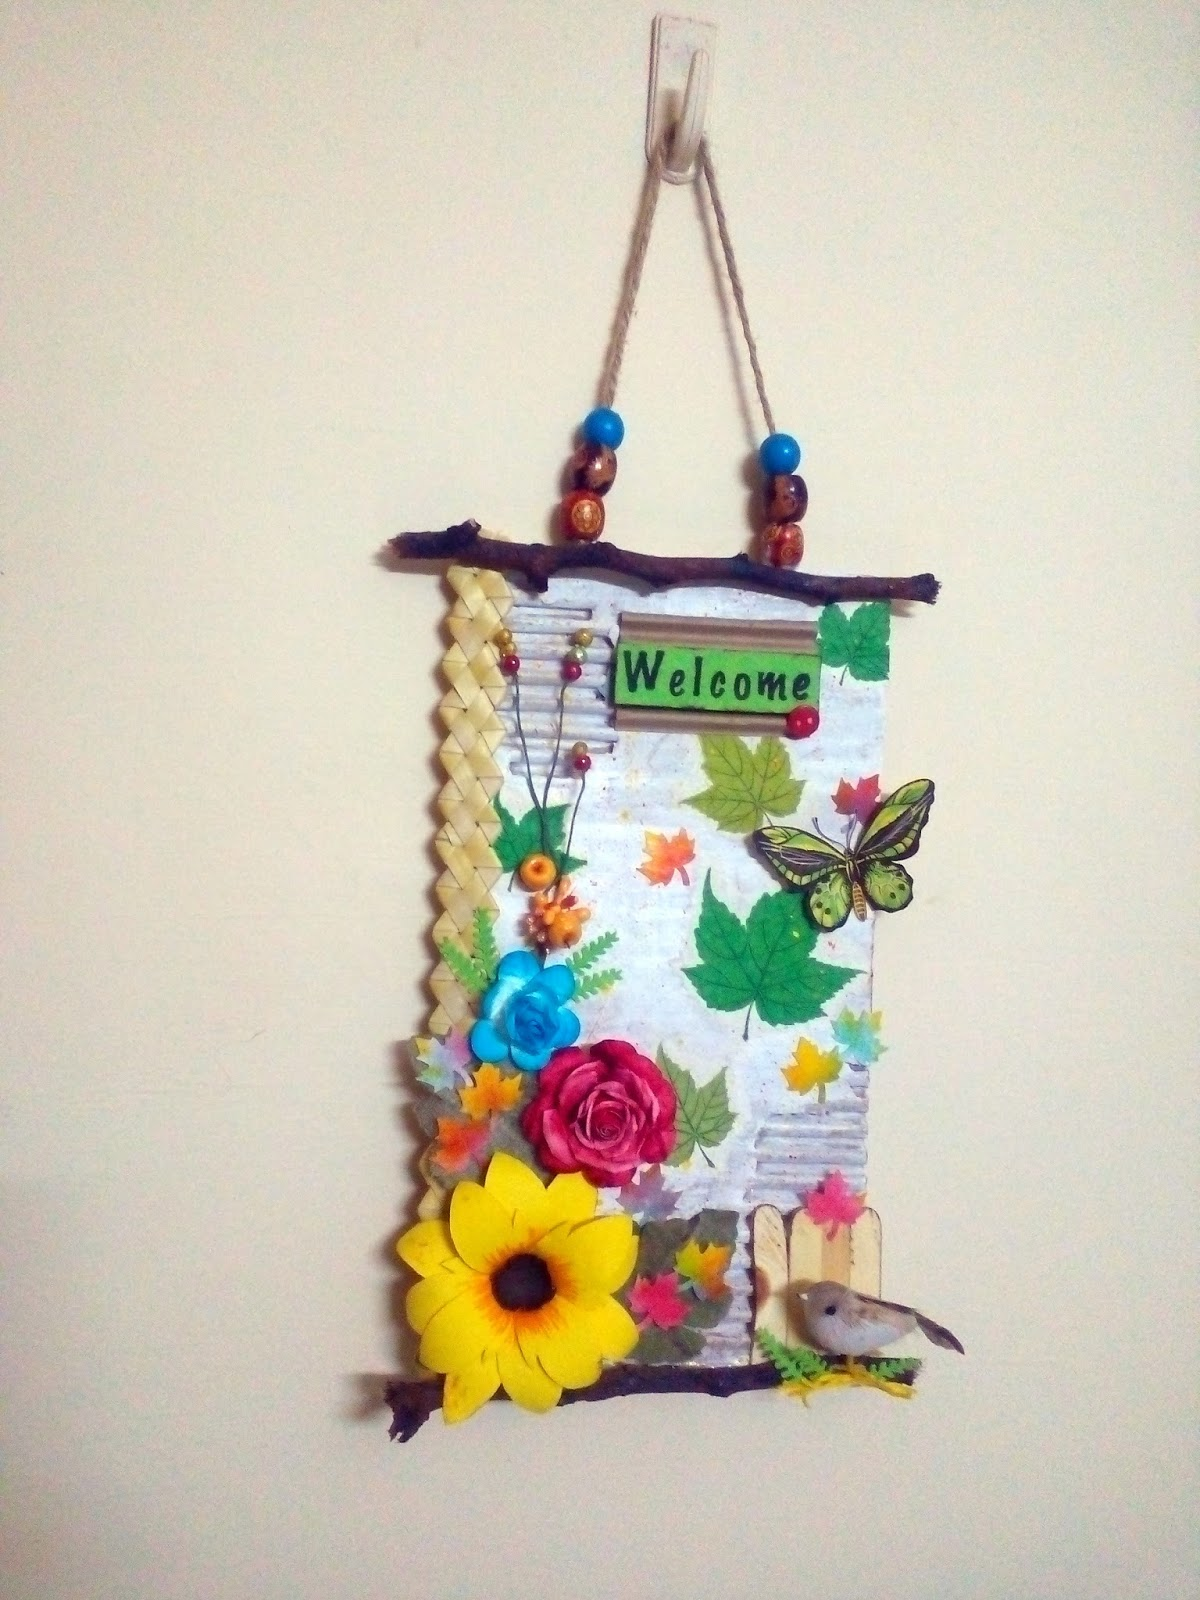 Shining colours handmade crafts welcome wall hanging for New handmade craft ideas